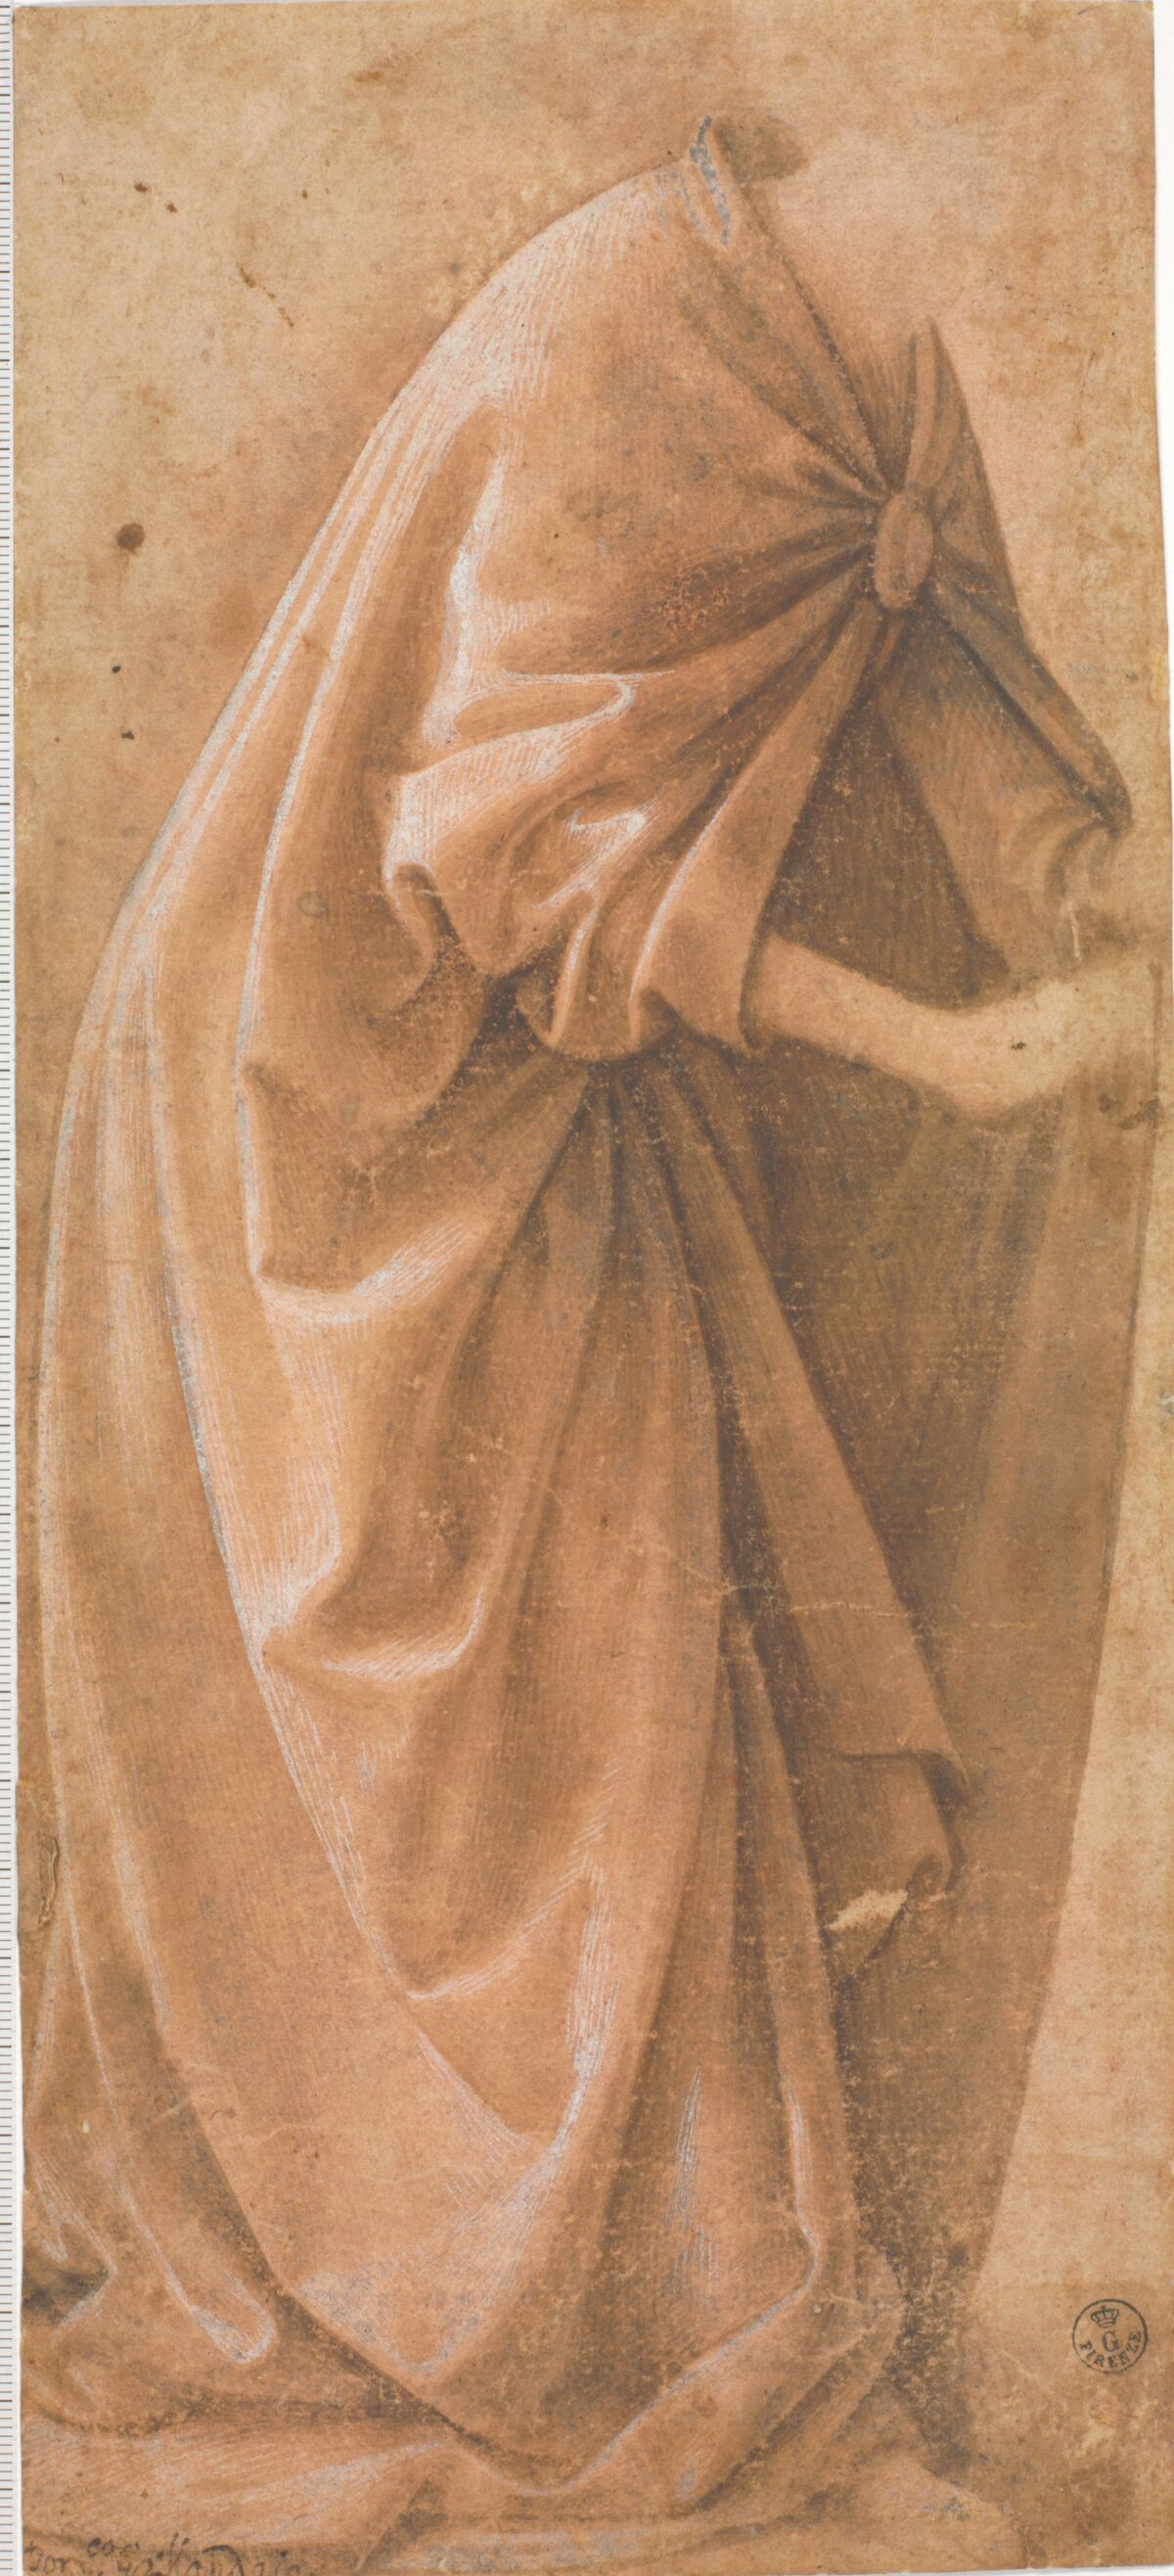 Domenico Ghirlandaio, Drapery study of a standing figure, 1485-90. Courtesy of the Metropolitan Museum of Art.